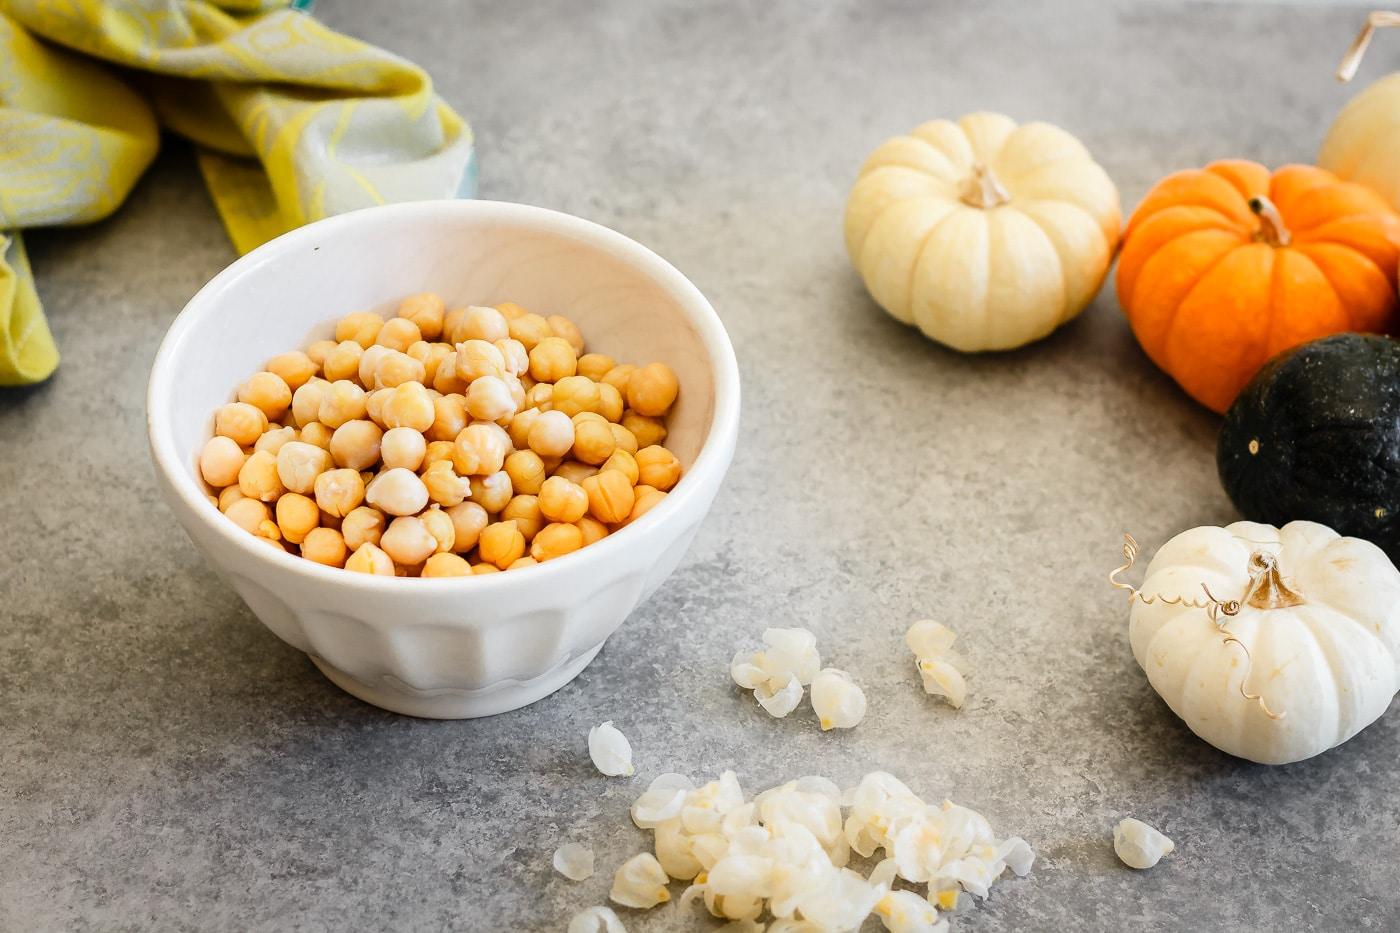 peeled canned chickpeas in a small white bowl with the peeled shells lying on the side